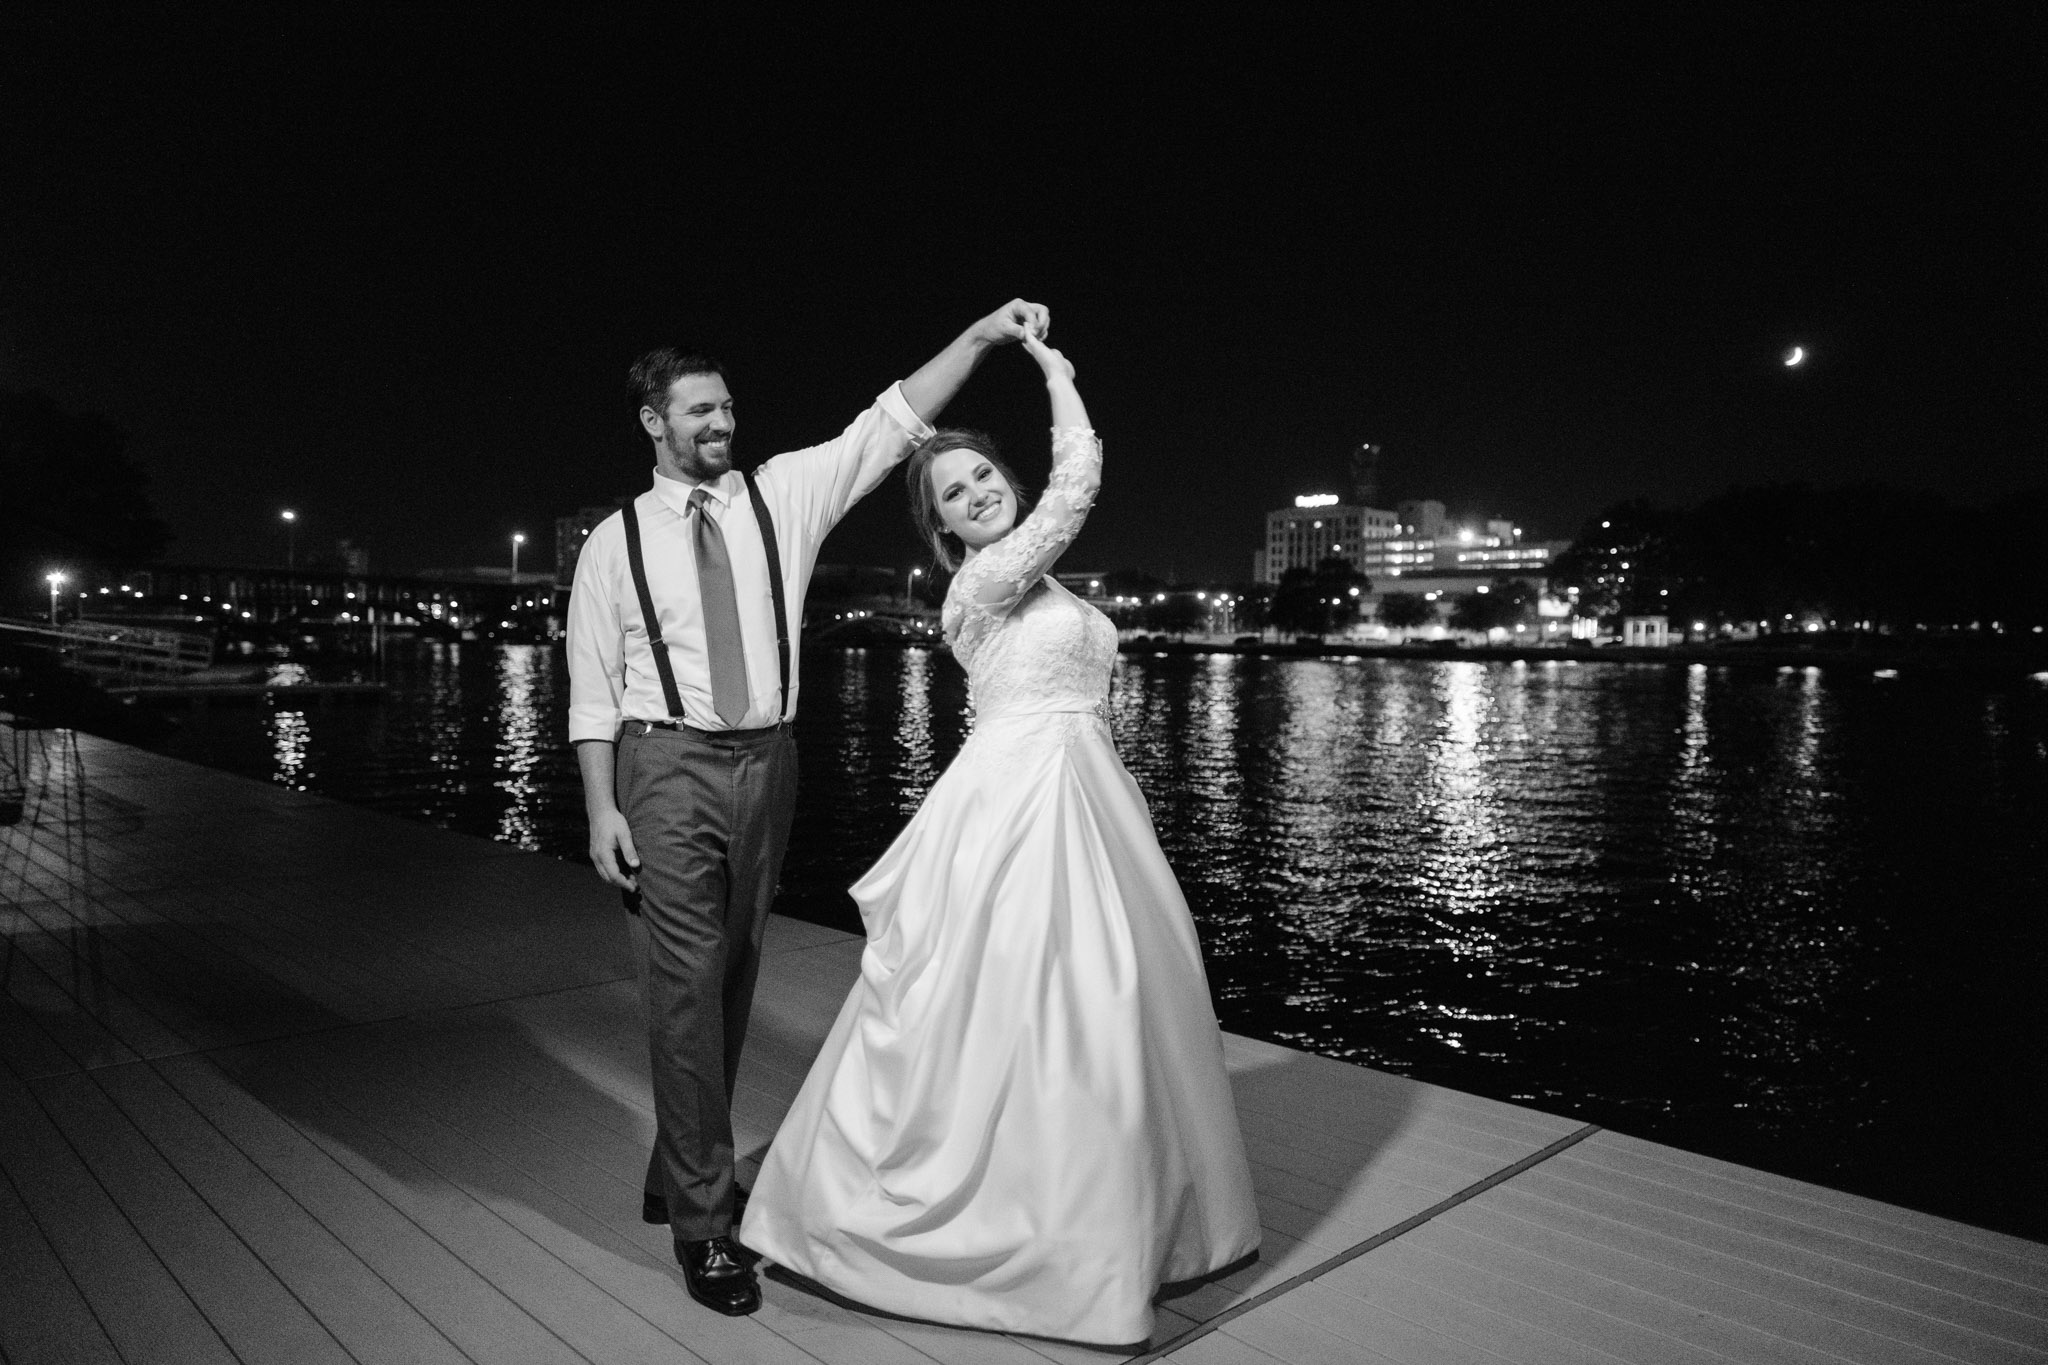 bride and groom dancing on the dock at prairie street brewhouse after dark.